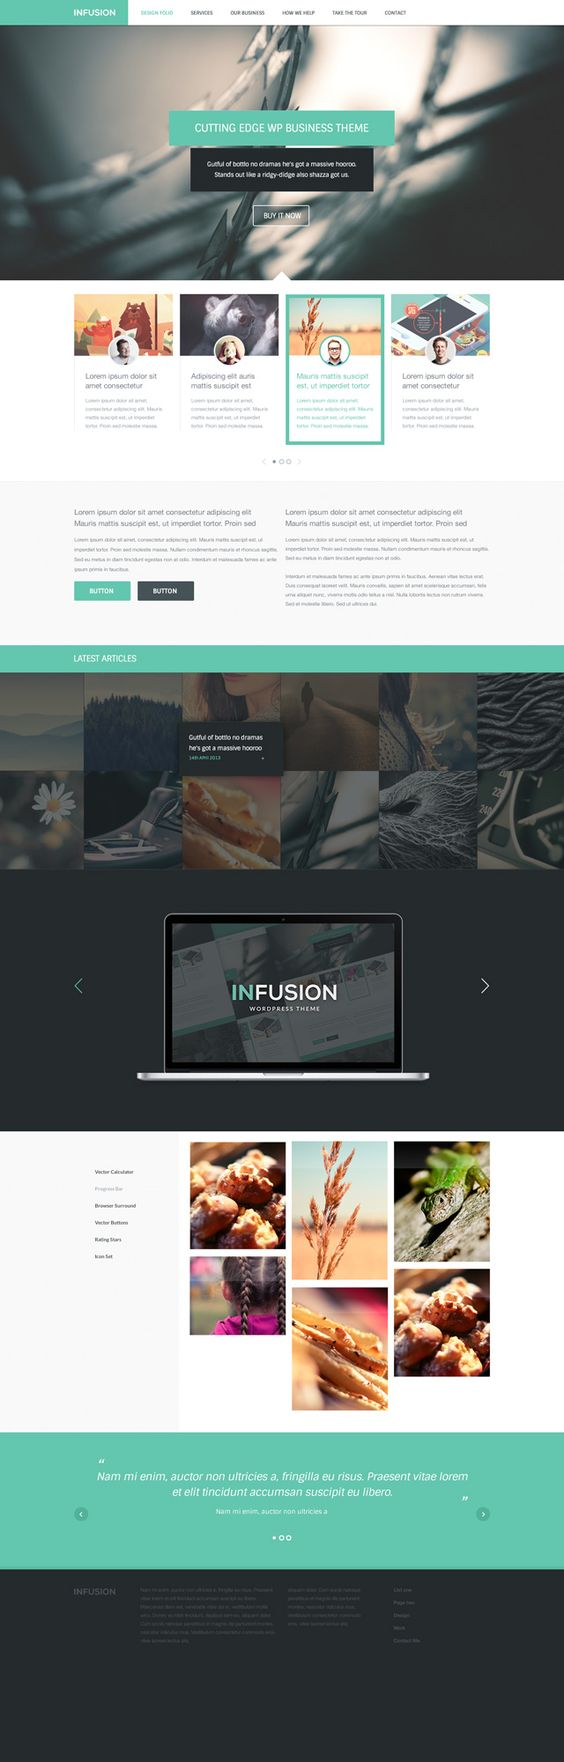 Infusion free website template free to use and customise for infusion free website template free to use and customise for personal and commercial use pronofoot35fo Gallery